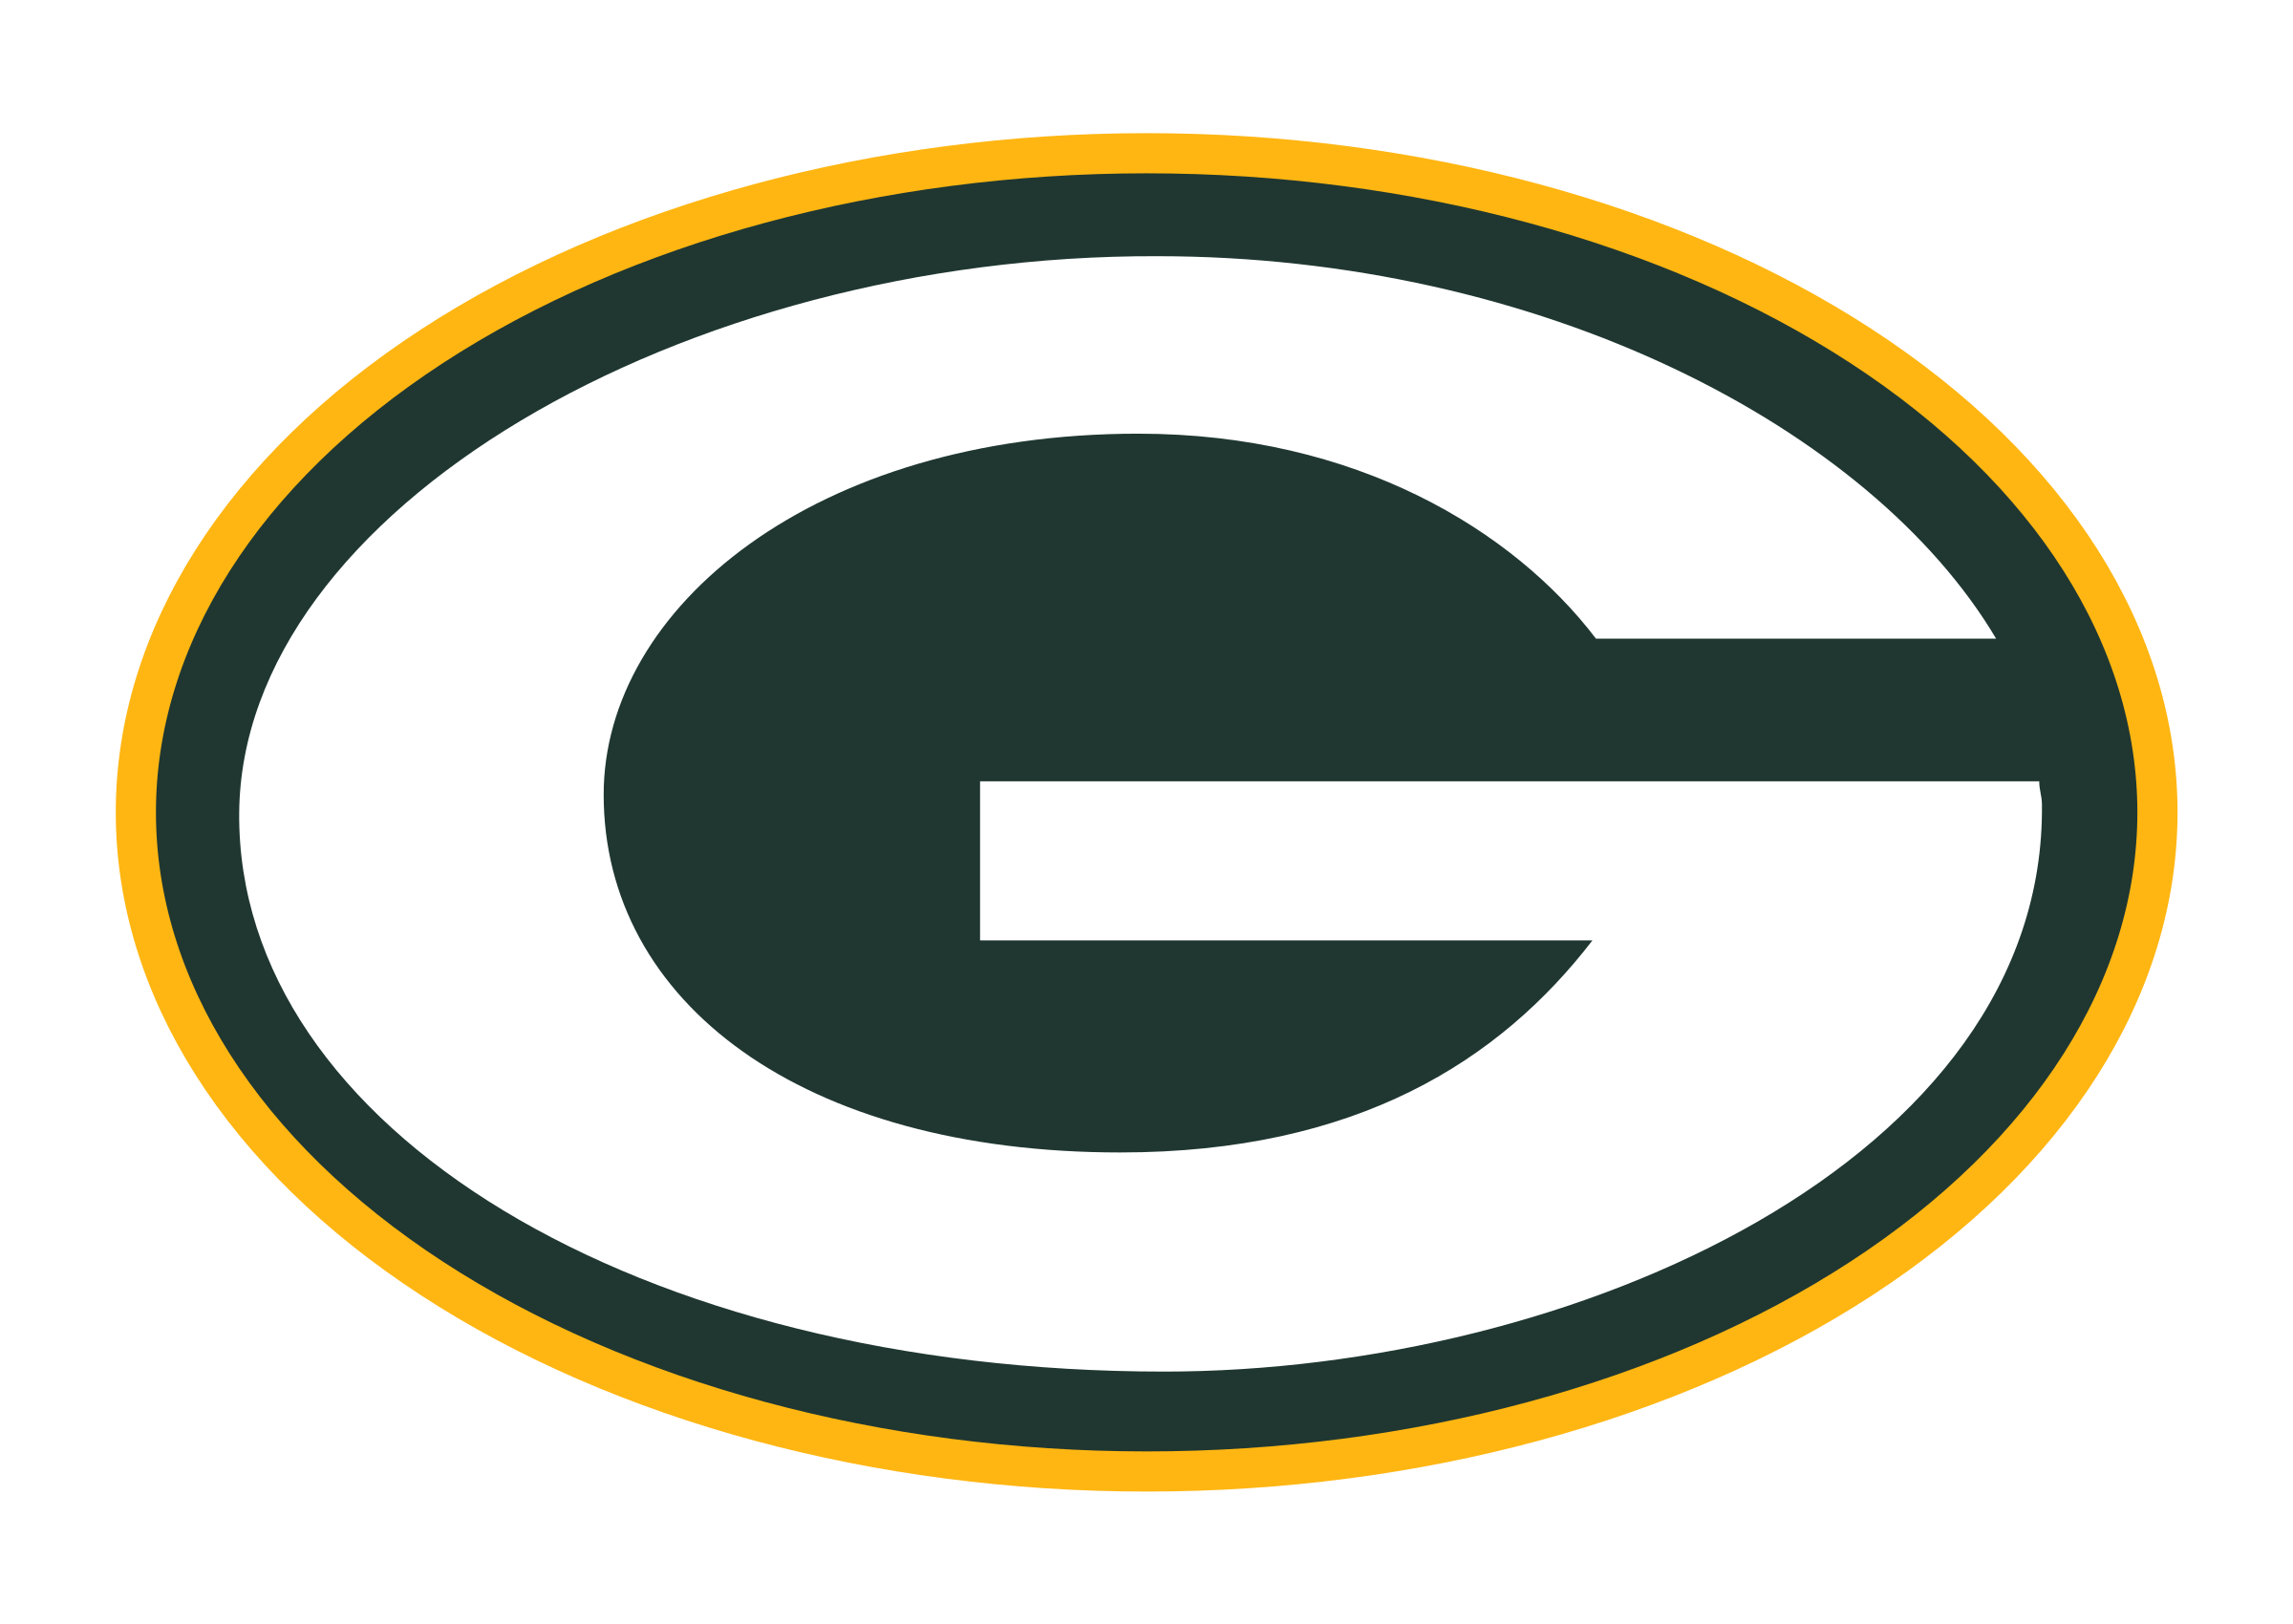 green bay packers logo png transparent   svg vector nfl team logo vector nfl logo vector image